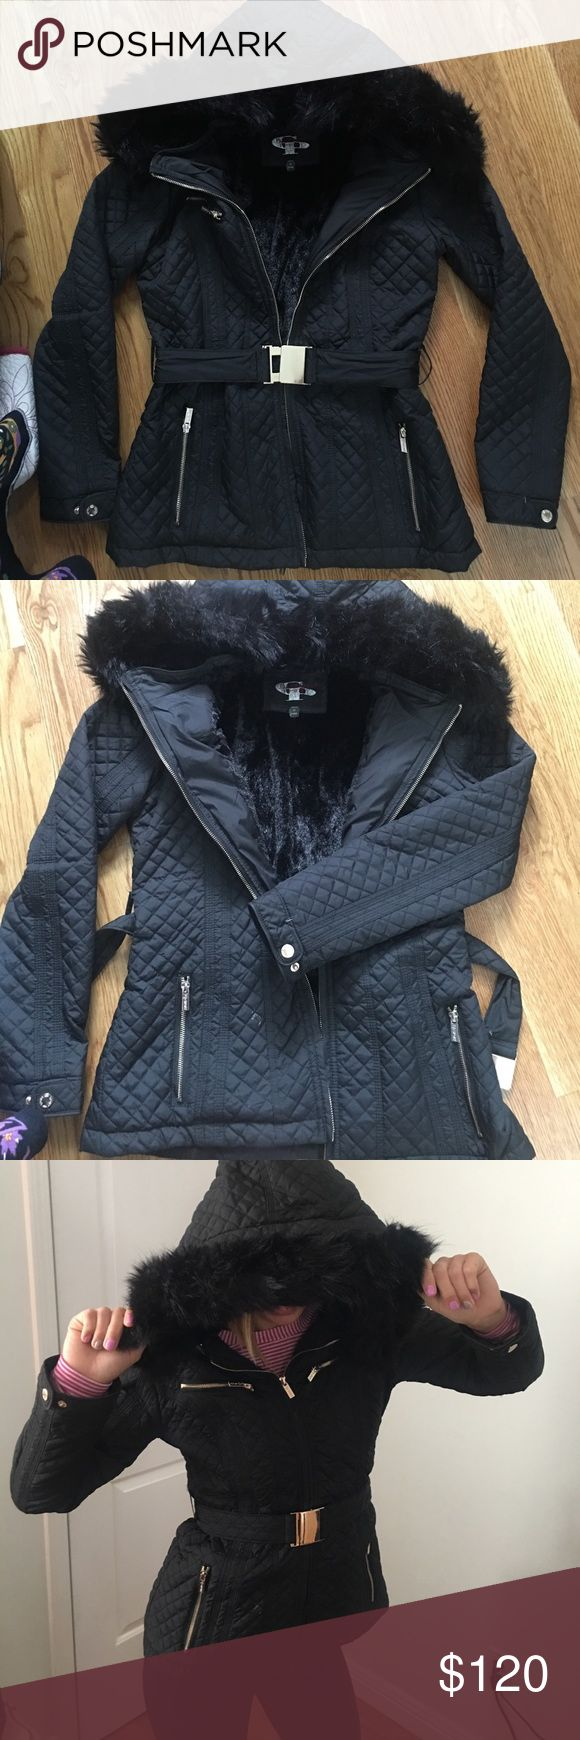 Black faux fur winter/ski jacket Gorgeous winter jacket. Similar to Burberry style, high quality material lined with back faux fur and hood. Hood is detachable so can be worn as a normal layered jacket, zipped up or open and has a cute fit tighter at the waist and slight flare and the bottom. Buckle belt gold clasp. Size small fits snug. Model shown wears a size xs-small. Make an offer!🖤❄️☃️ ***Burberry for inspo only*** Burberry Jackets & Coats Pea Coats